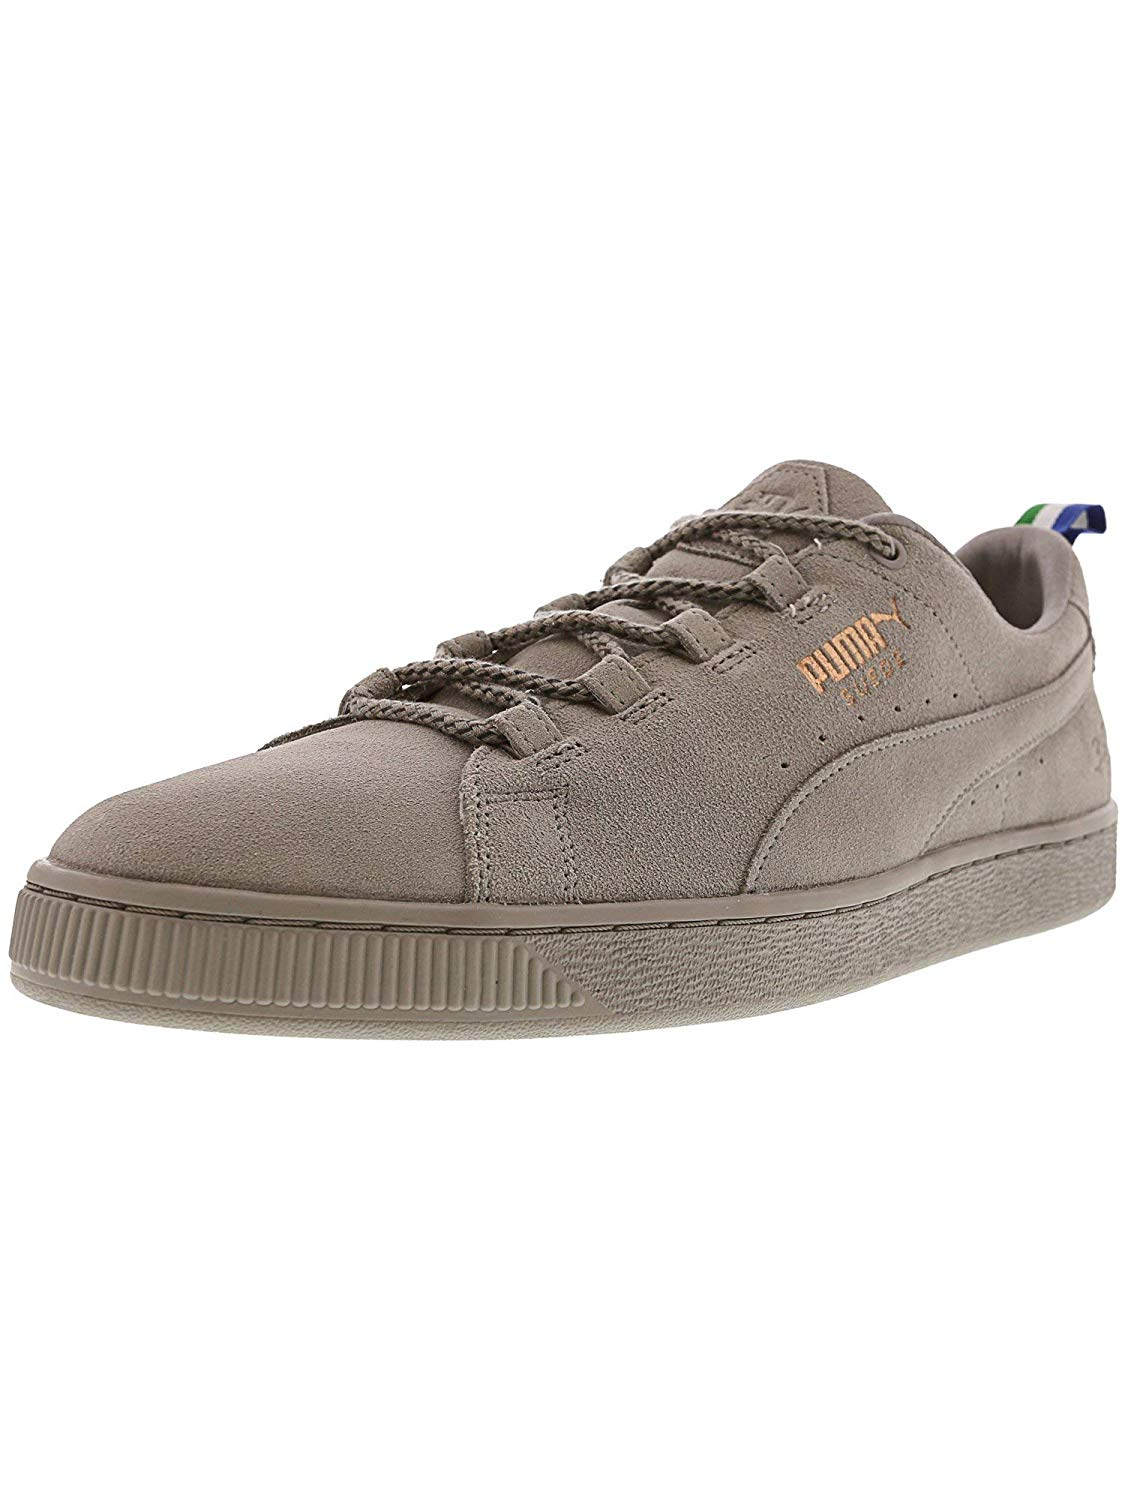 5a3b909cbba86 PUMA Men's Suede Big Sean Ankle-High Fashion Sneaker | eBay